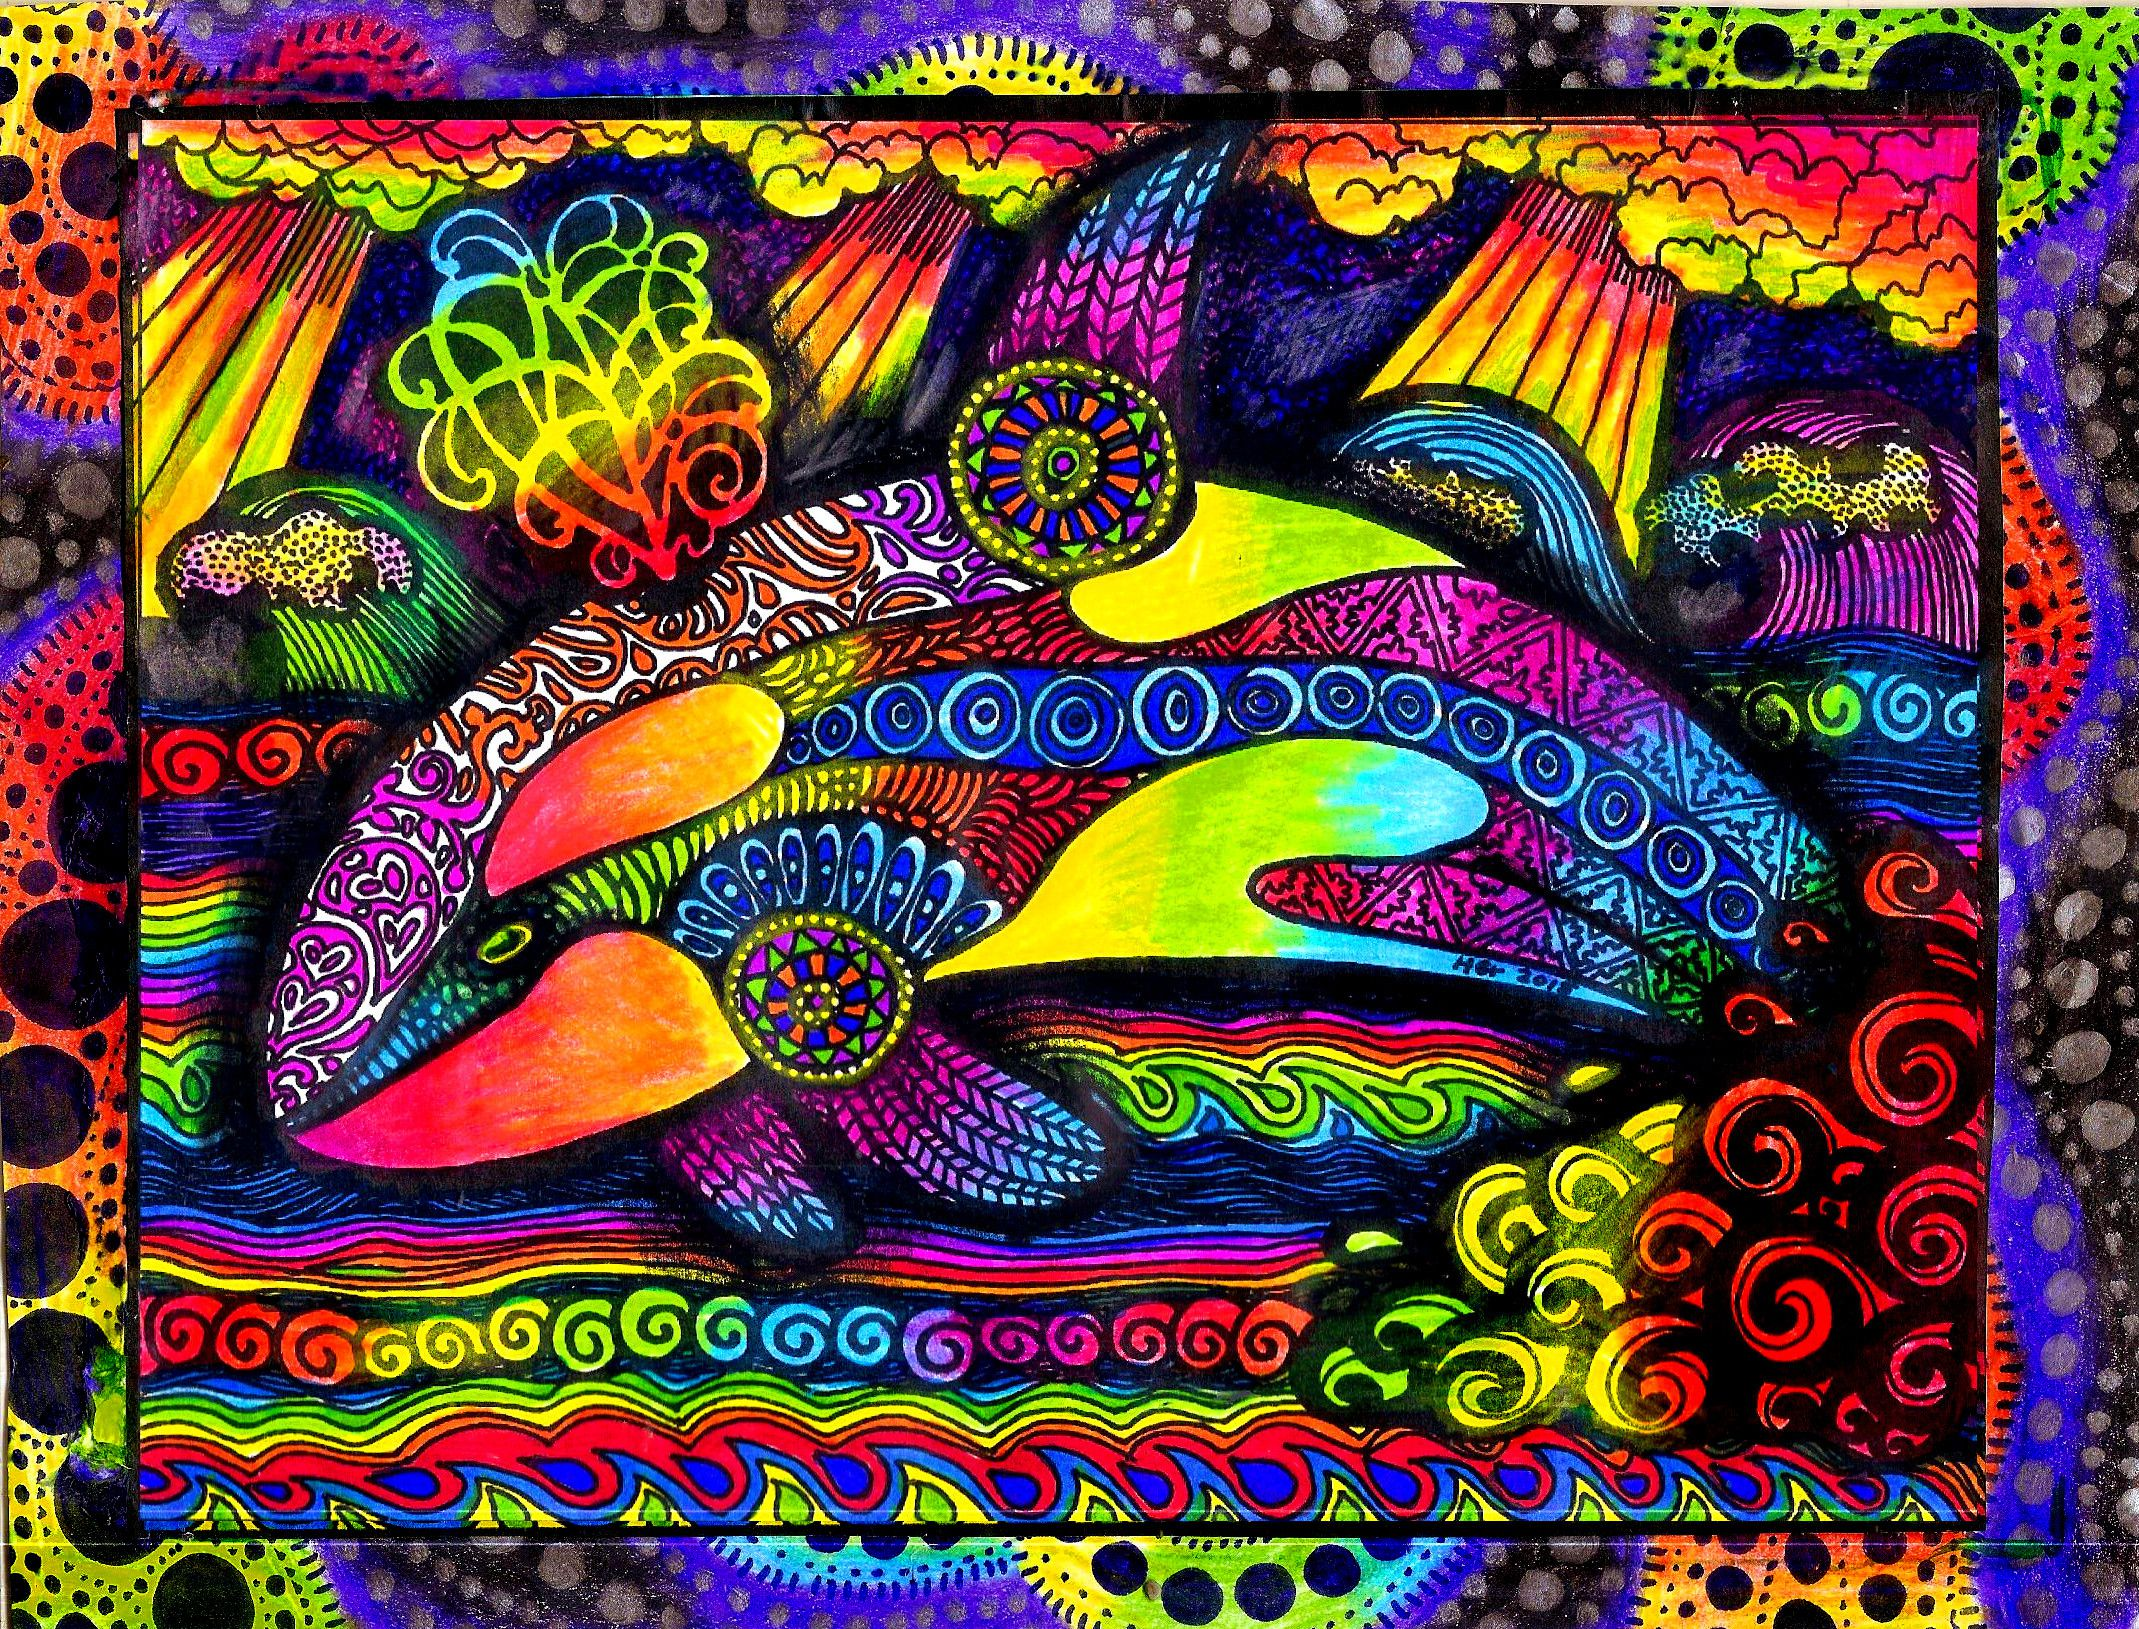 colorful hgcreativearts rainbow whale sealife drawing artwork art